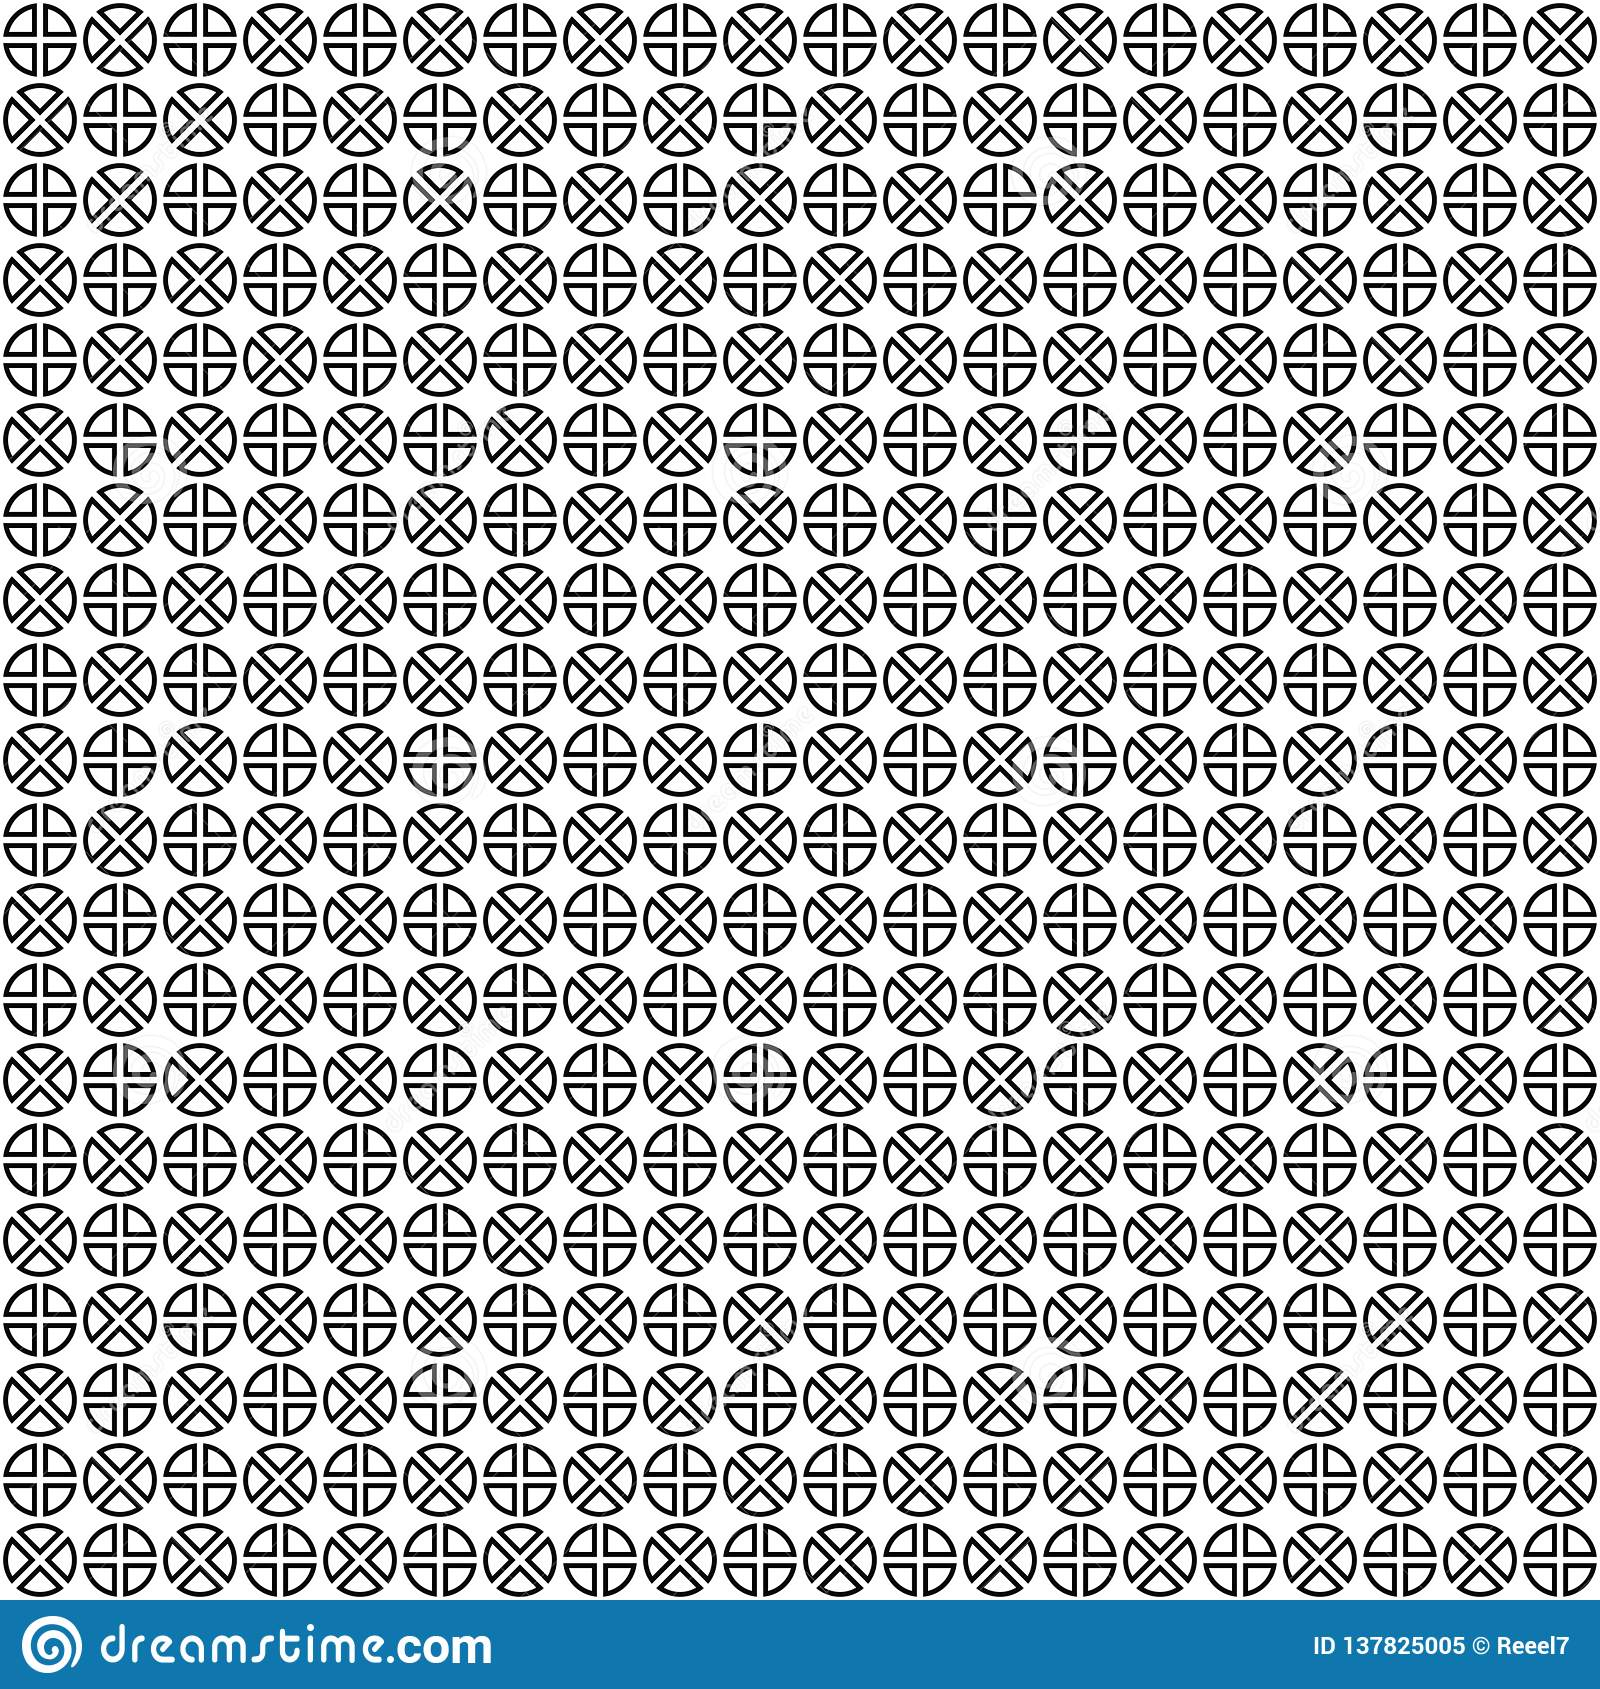 Vector seamless pattern. Abstract geometric texture. Black-and-white background. Monochrome divided circles design.